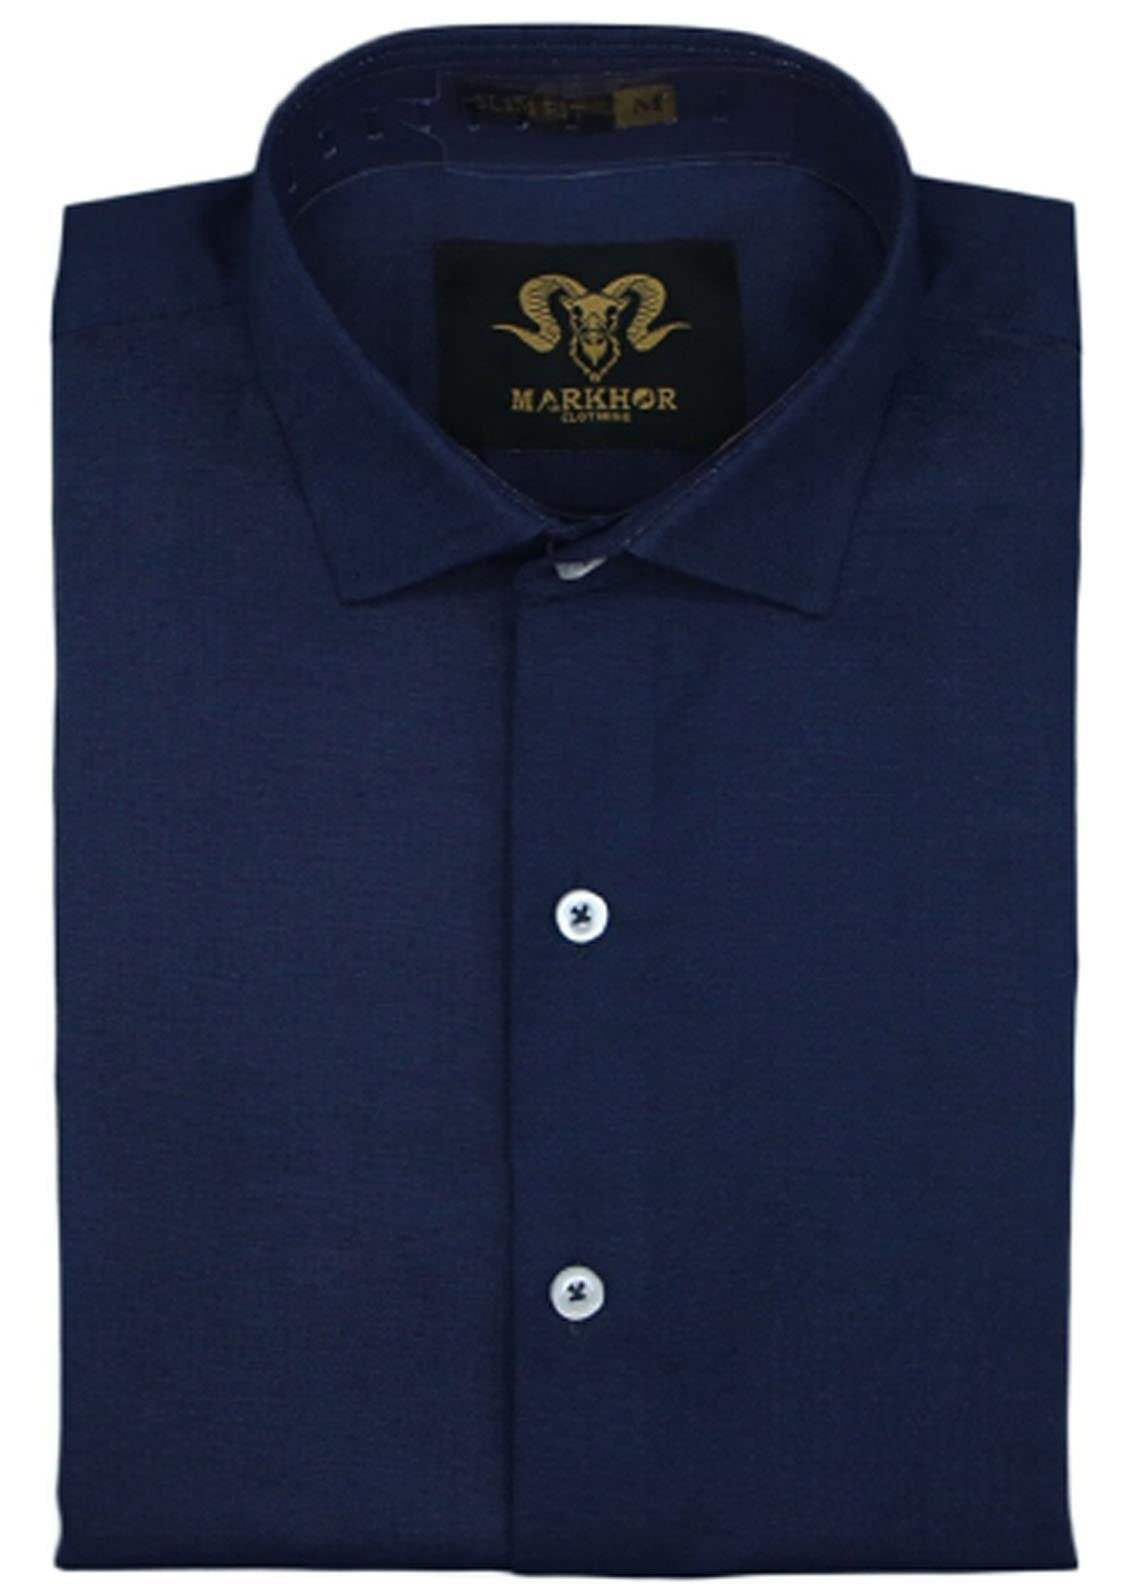 Markhor Clothing Chambray Cotton Formal Shirts for Men - Navy Blue  Chambray Cotton Slim Fit Formal Shirt